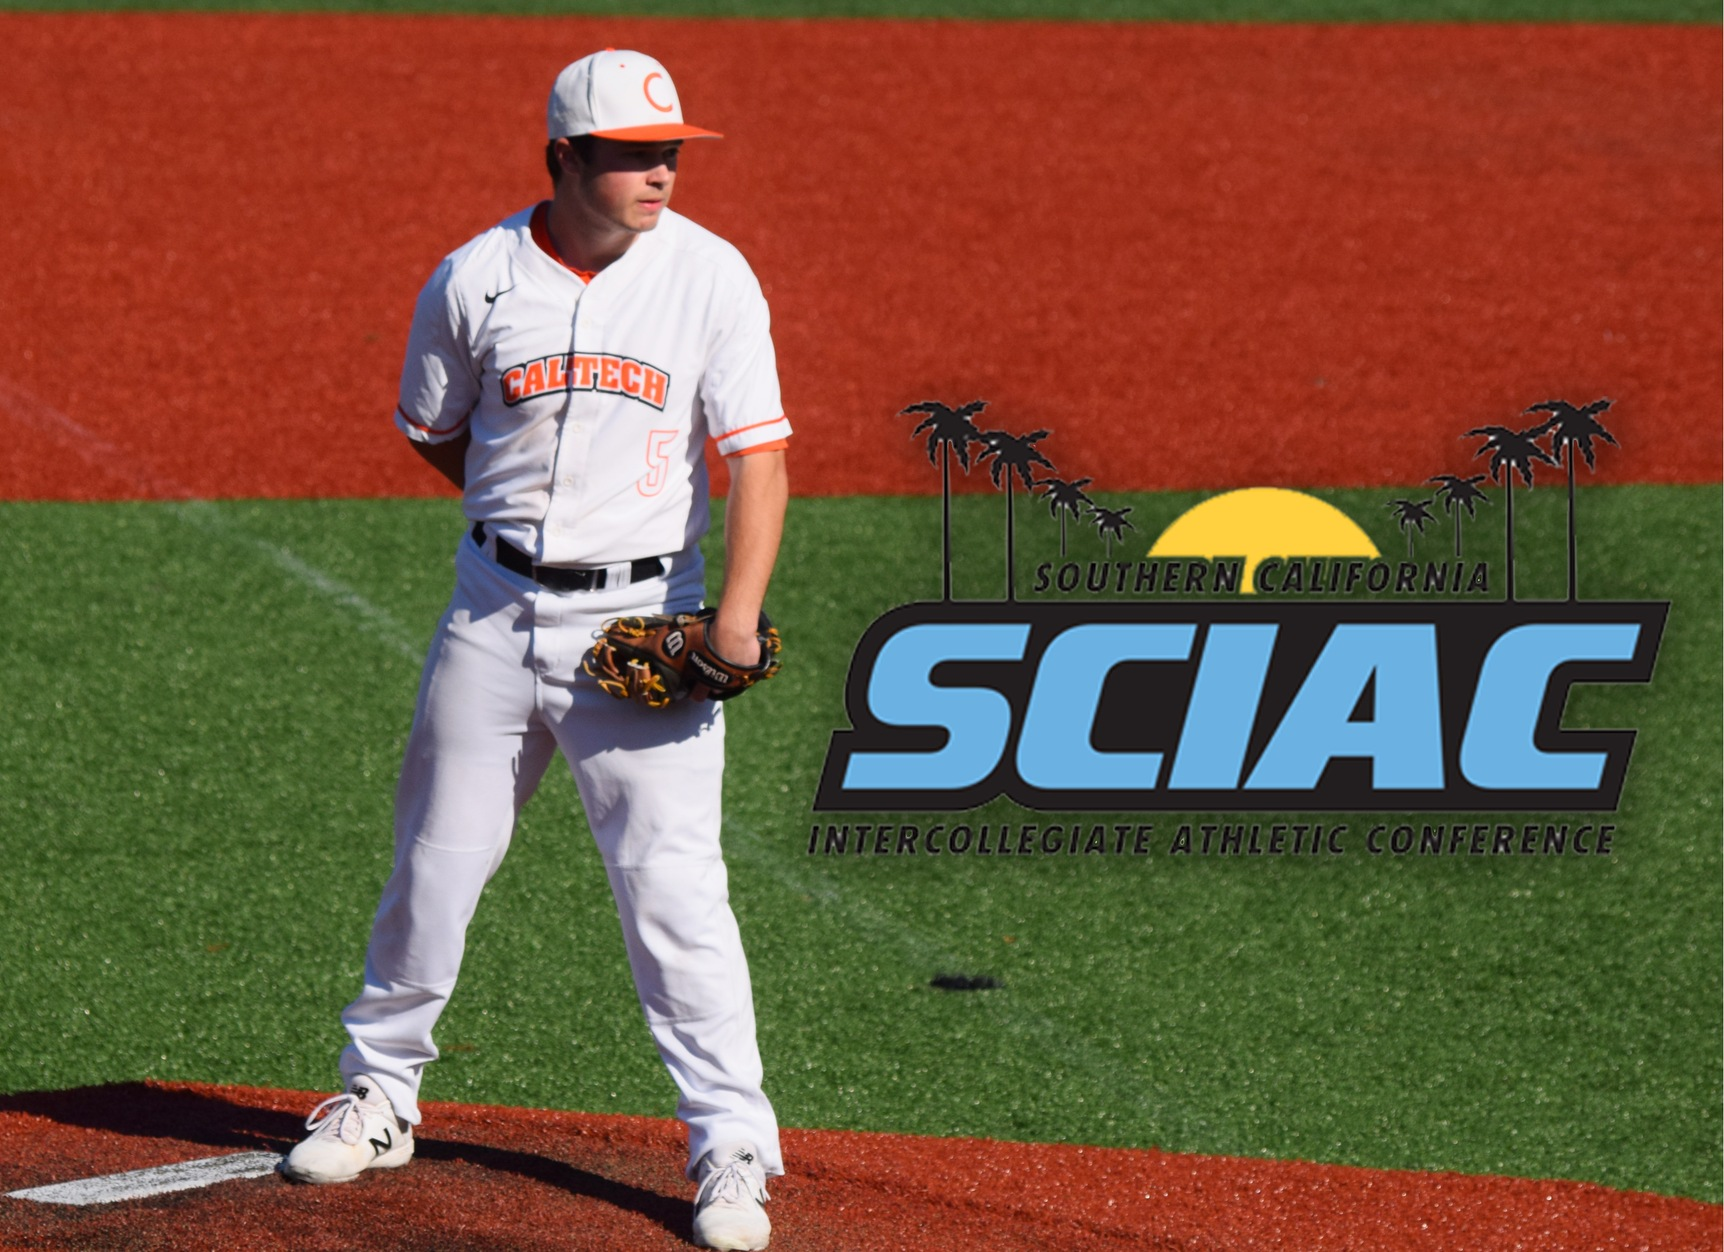 Ruscansky Baseball's First SCIAC Athlete of the Week in Nearly Two Years